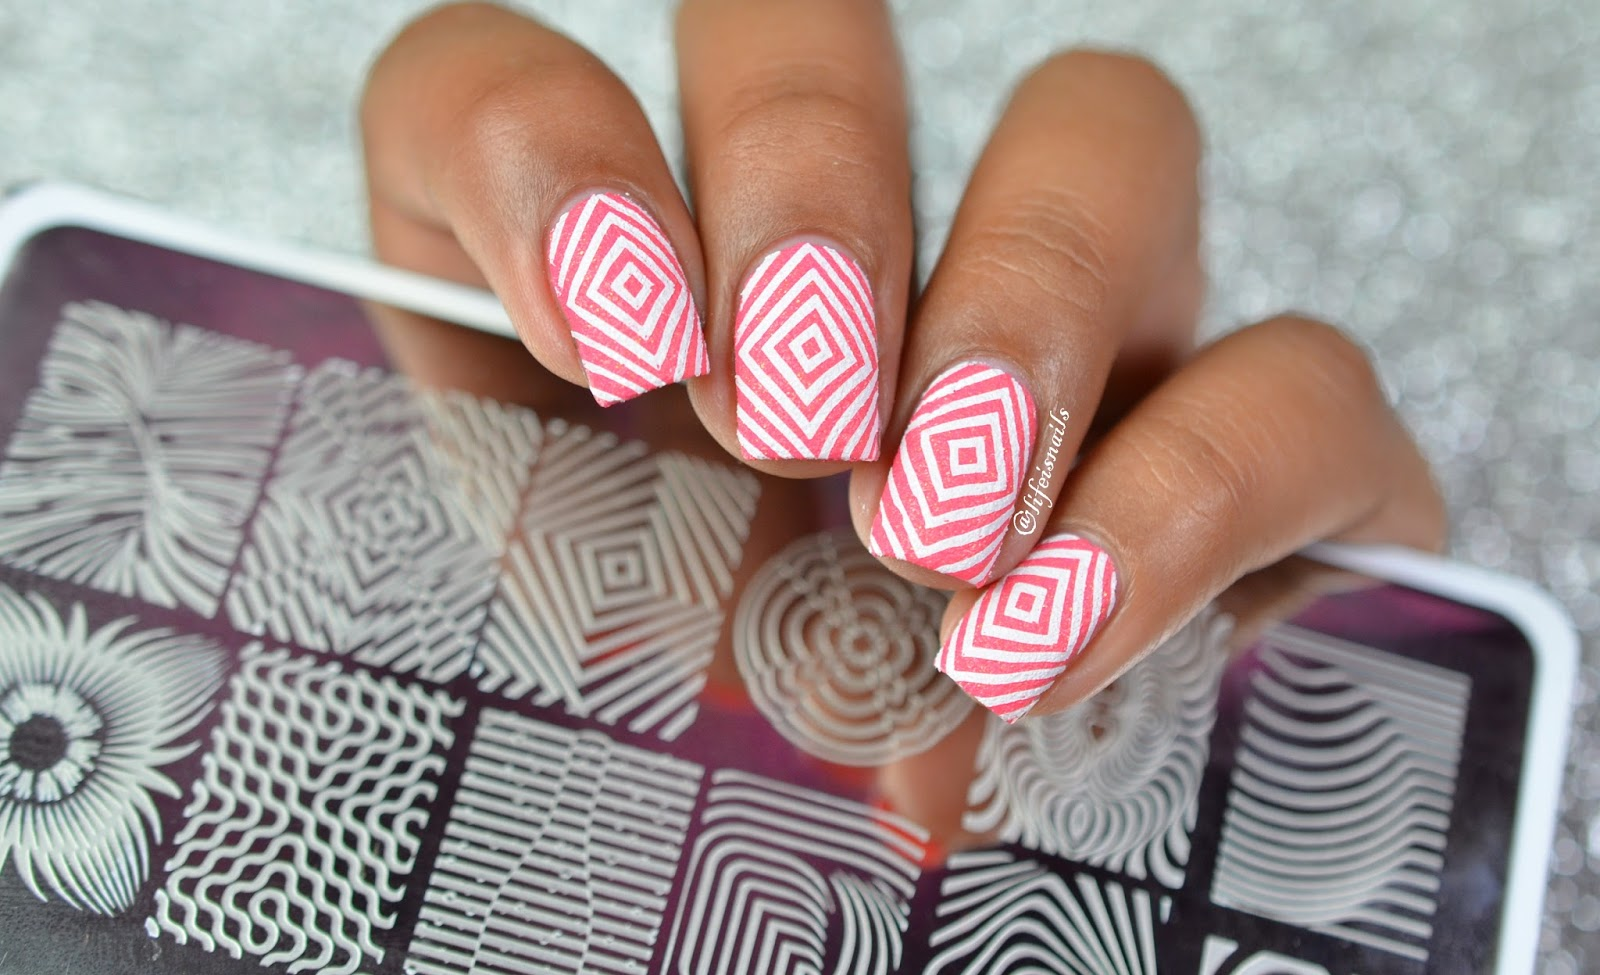 NailMatinee Nail Art Stamping Plates Review ~ Lifeisnails